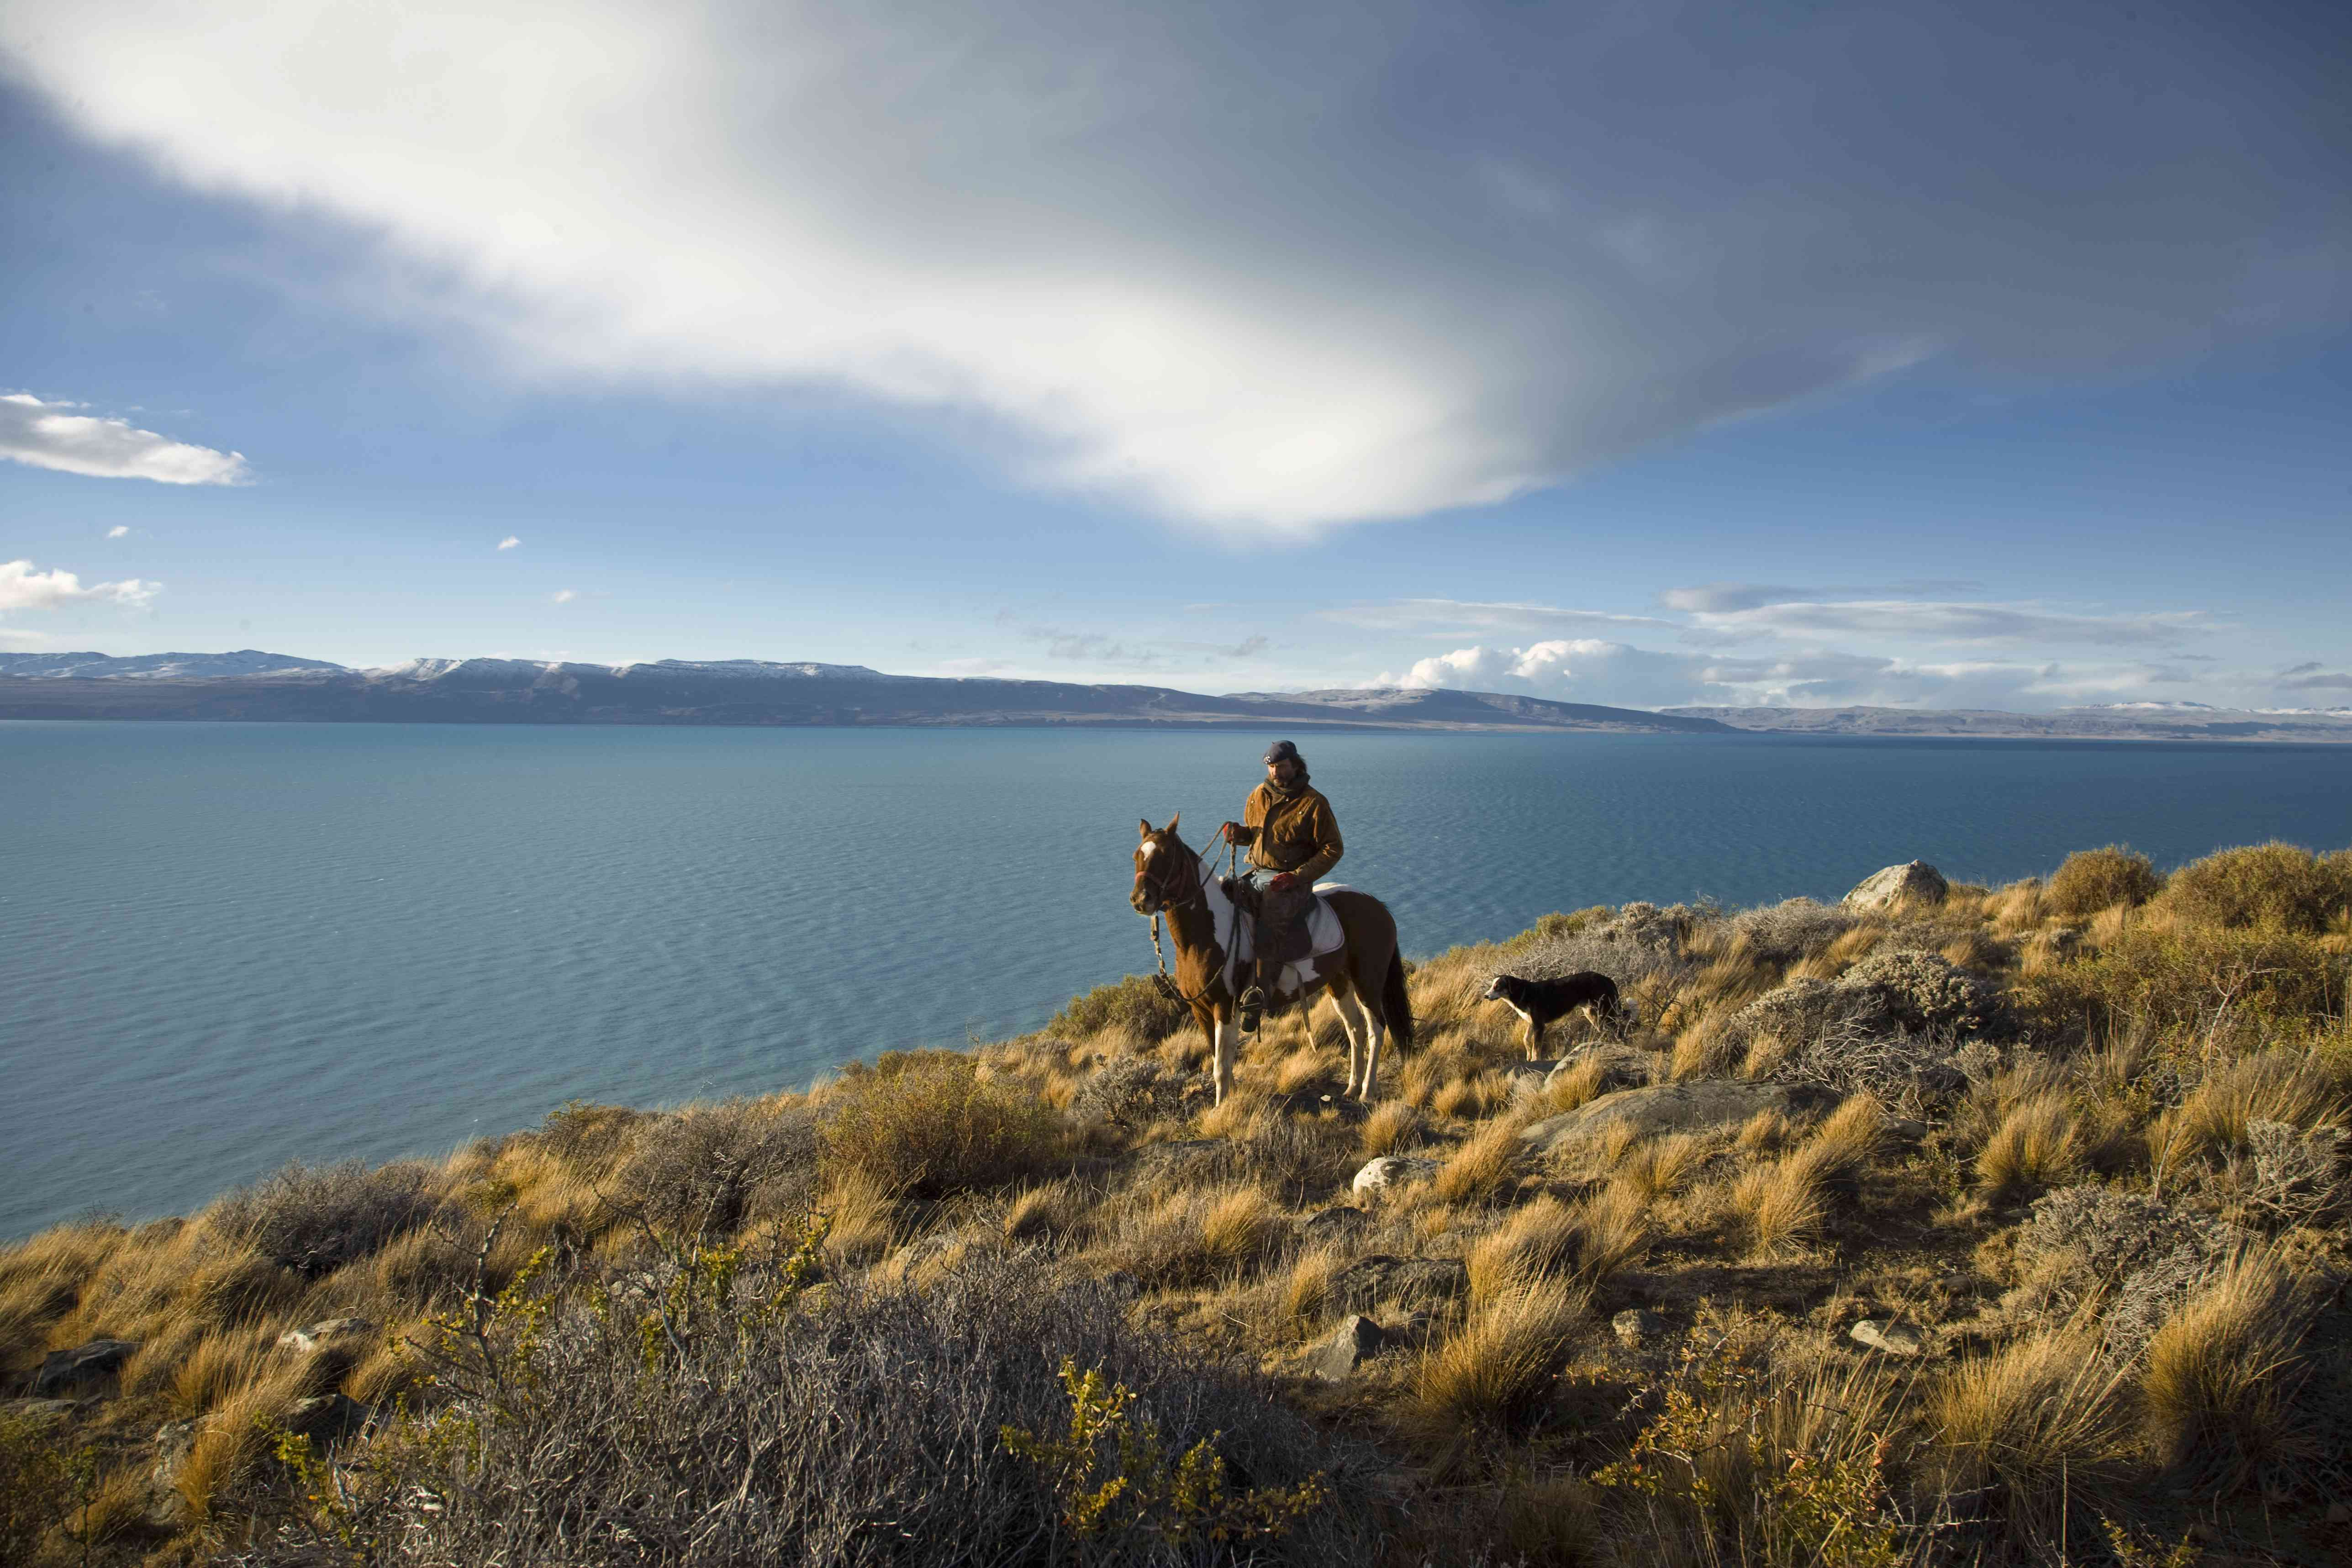 Man dressed in traditional Goucho style sitting on horse looking over Lago Argentina